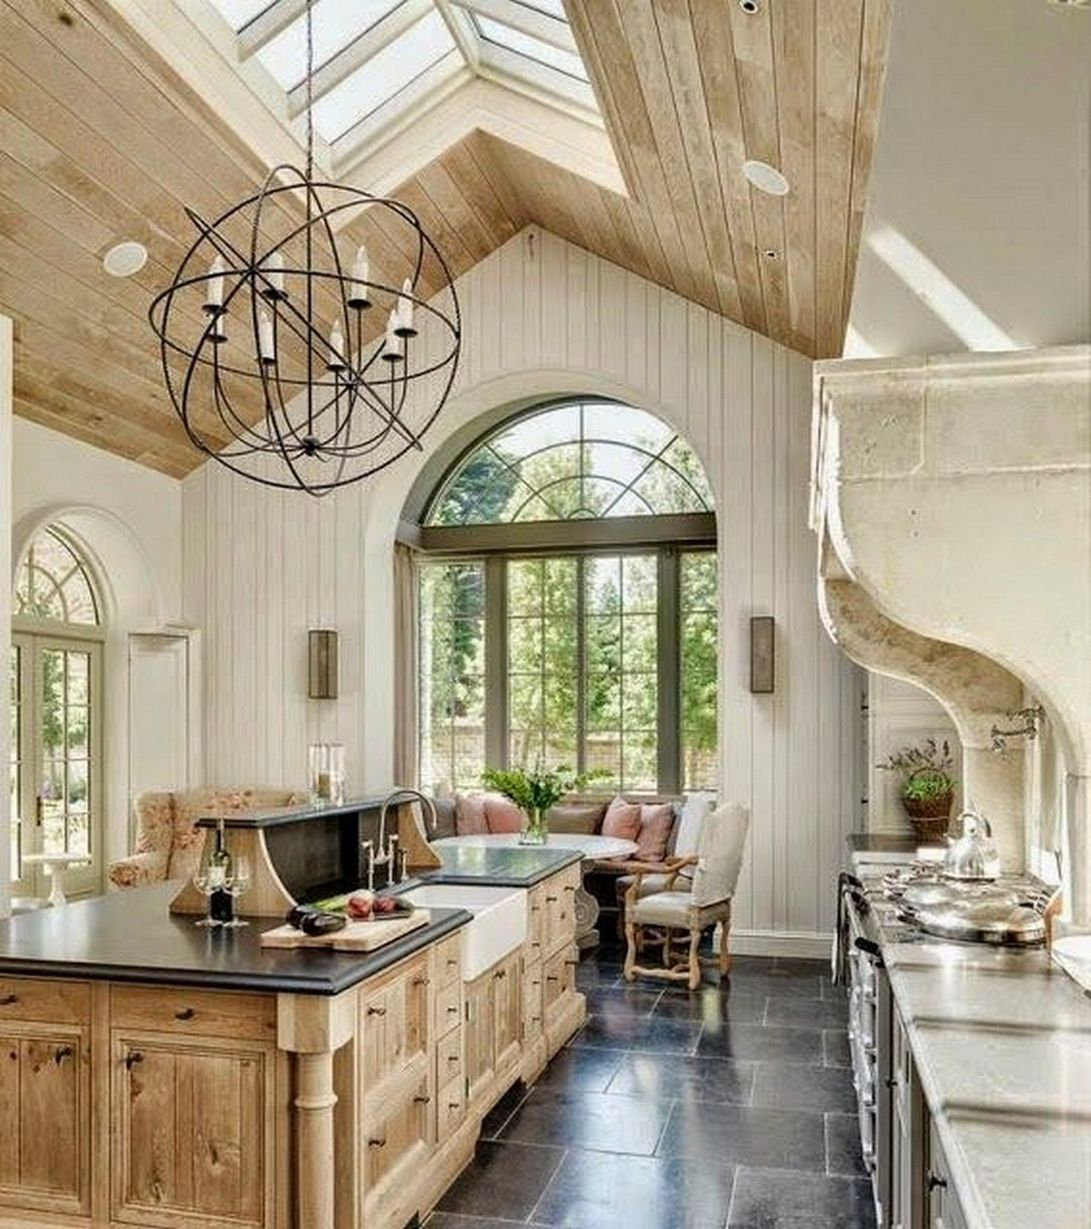 50 best french country kitchens design ideas remodel pict for French country kitchen designs